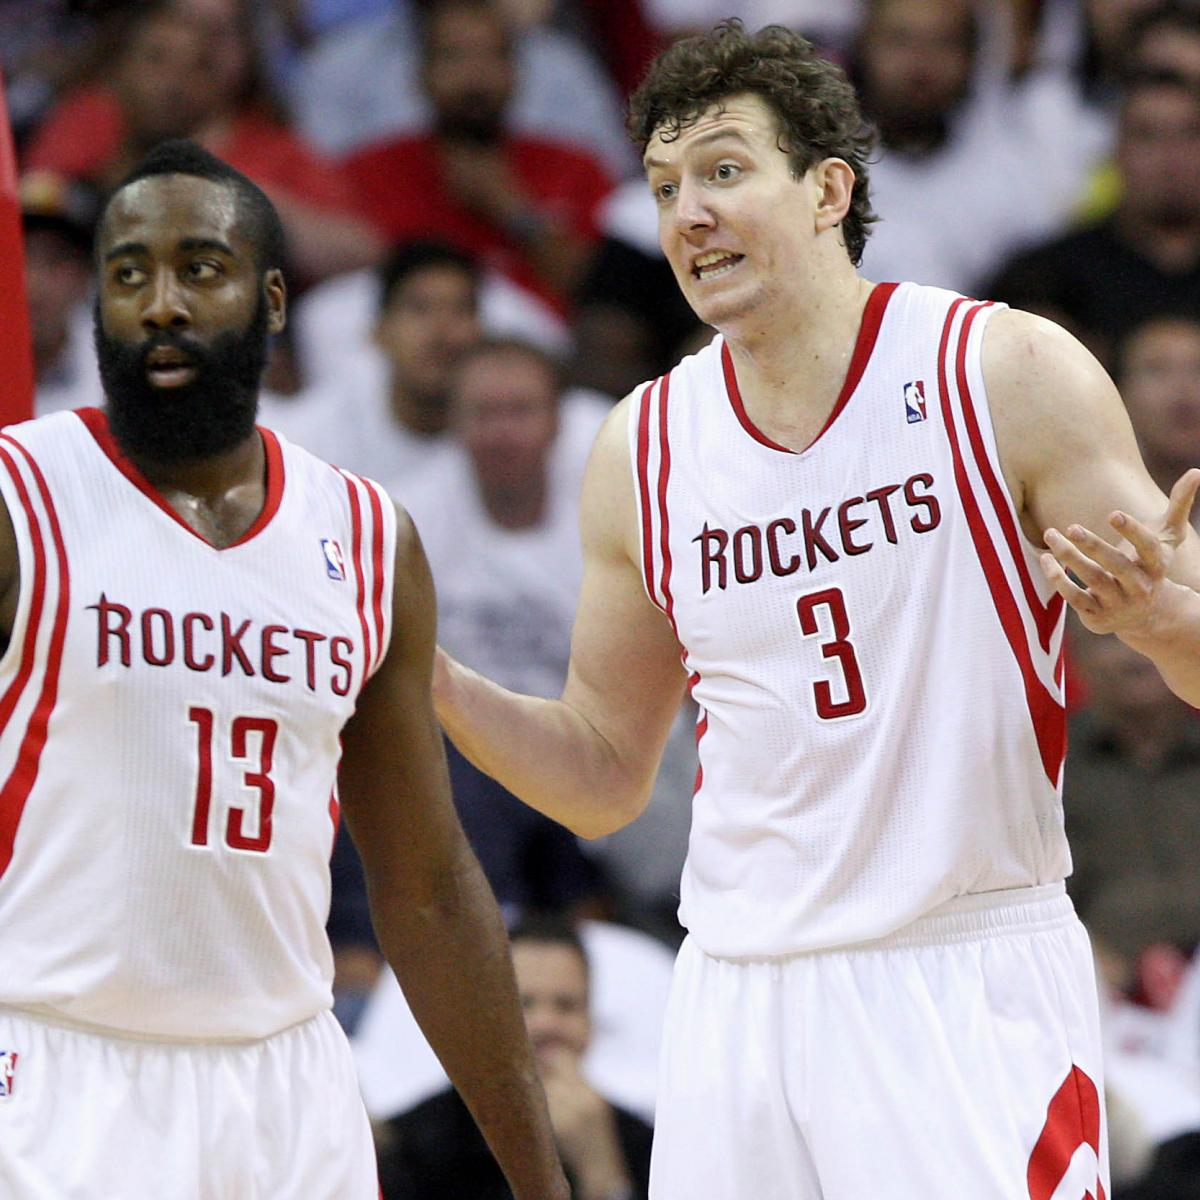 Houston Rockets Championship Roster: NBA Trade Rumors: Houston Rockets Must Trade Omer Asik To